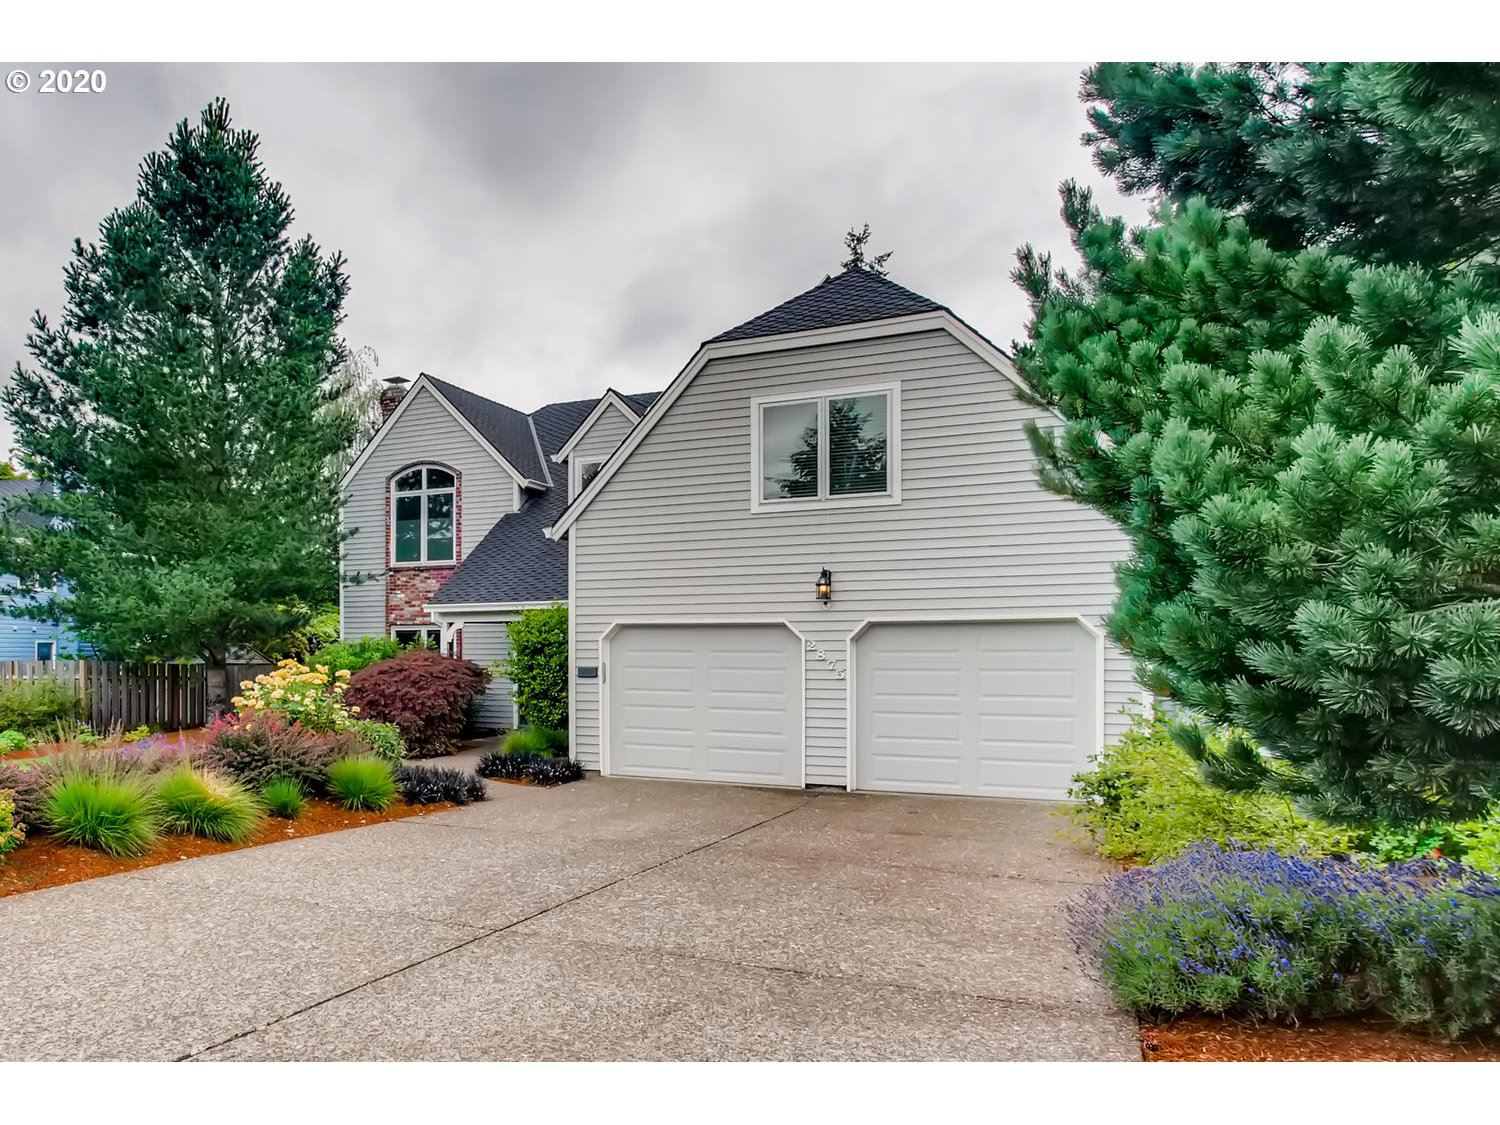 2875 NW 132ND AVE, Portland, OR 97229 - MLS#: 20417673